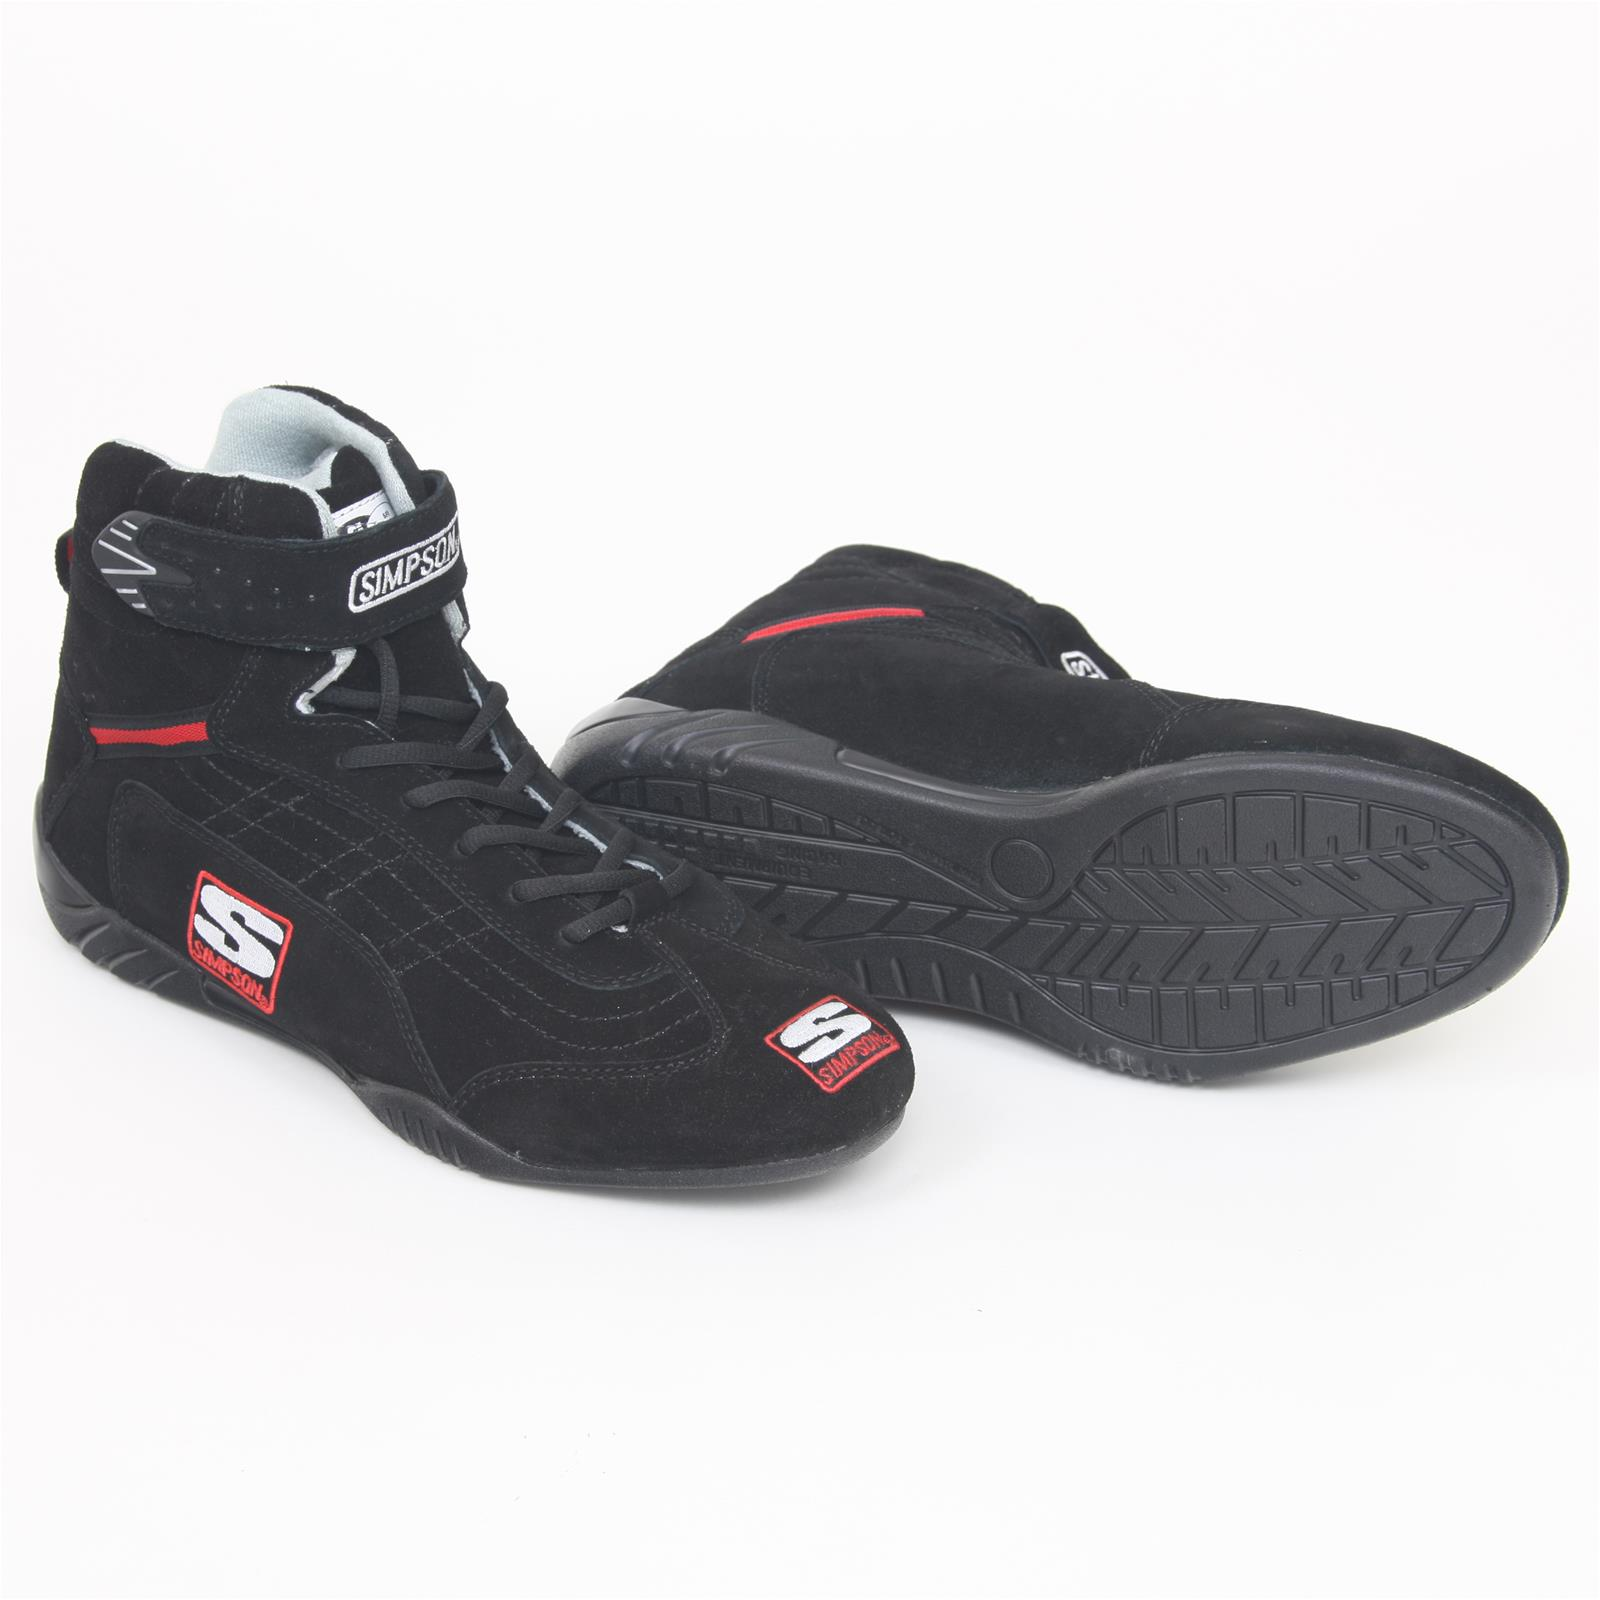 Racing Shoes Simpson Racing Shoes